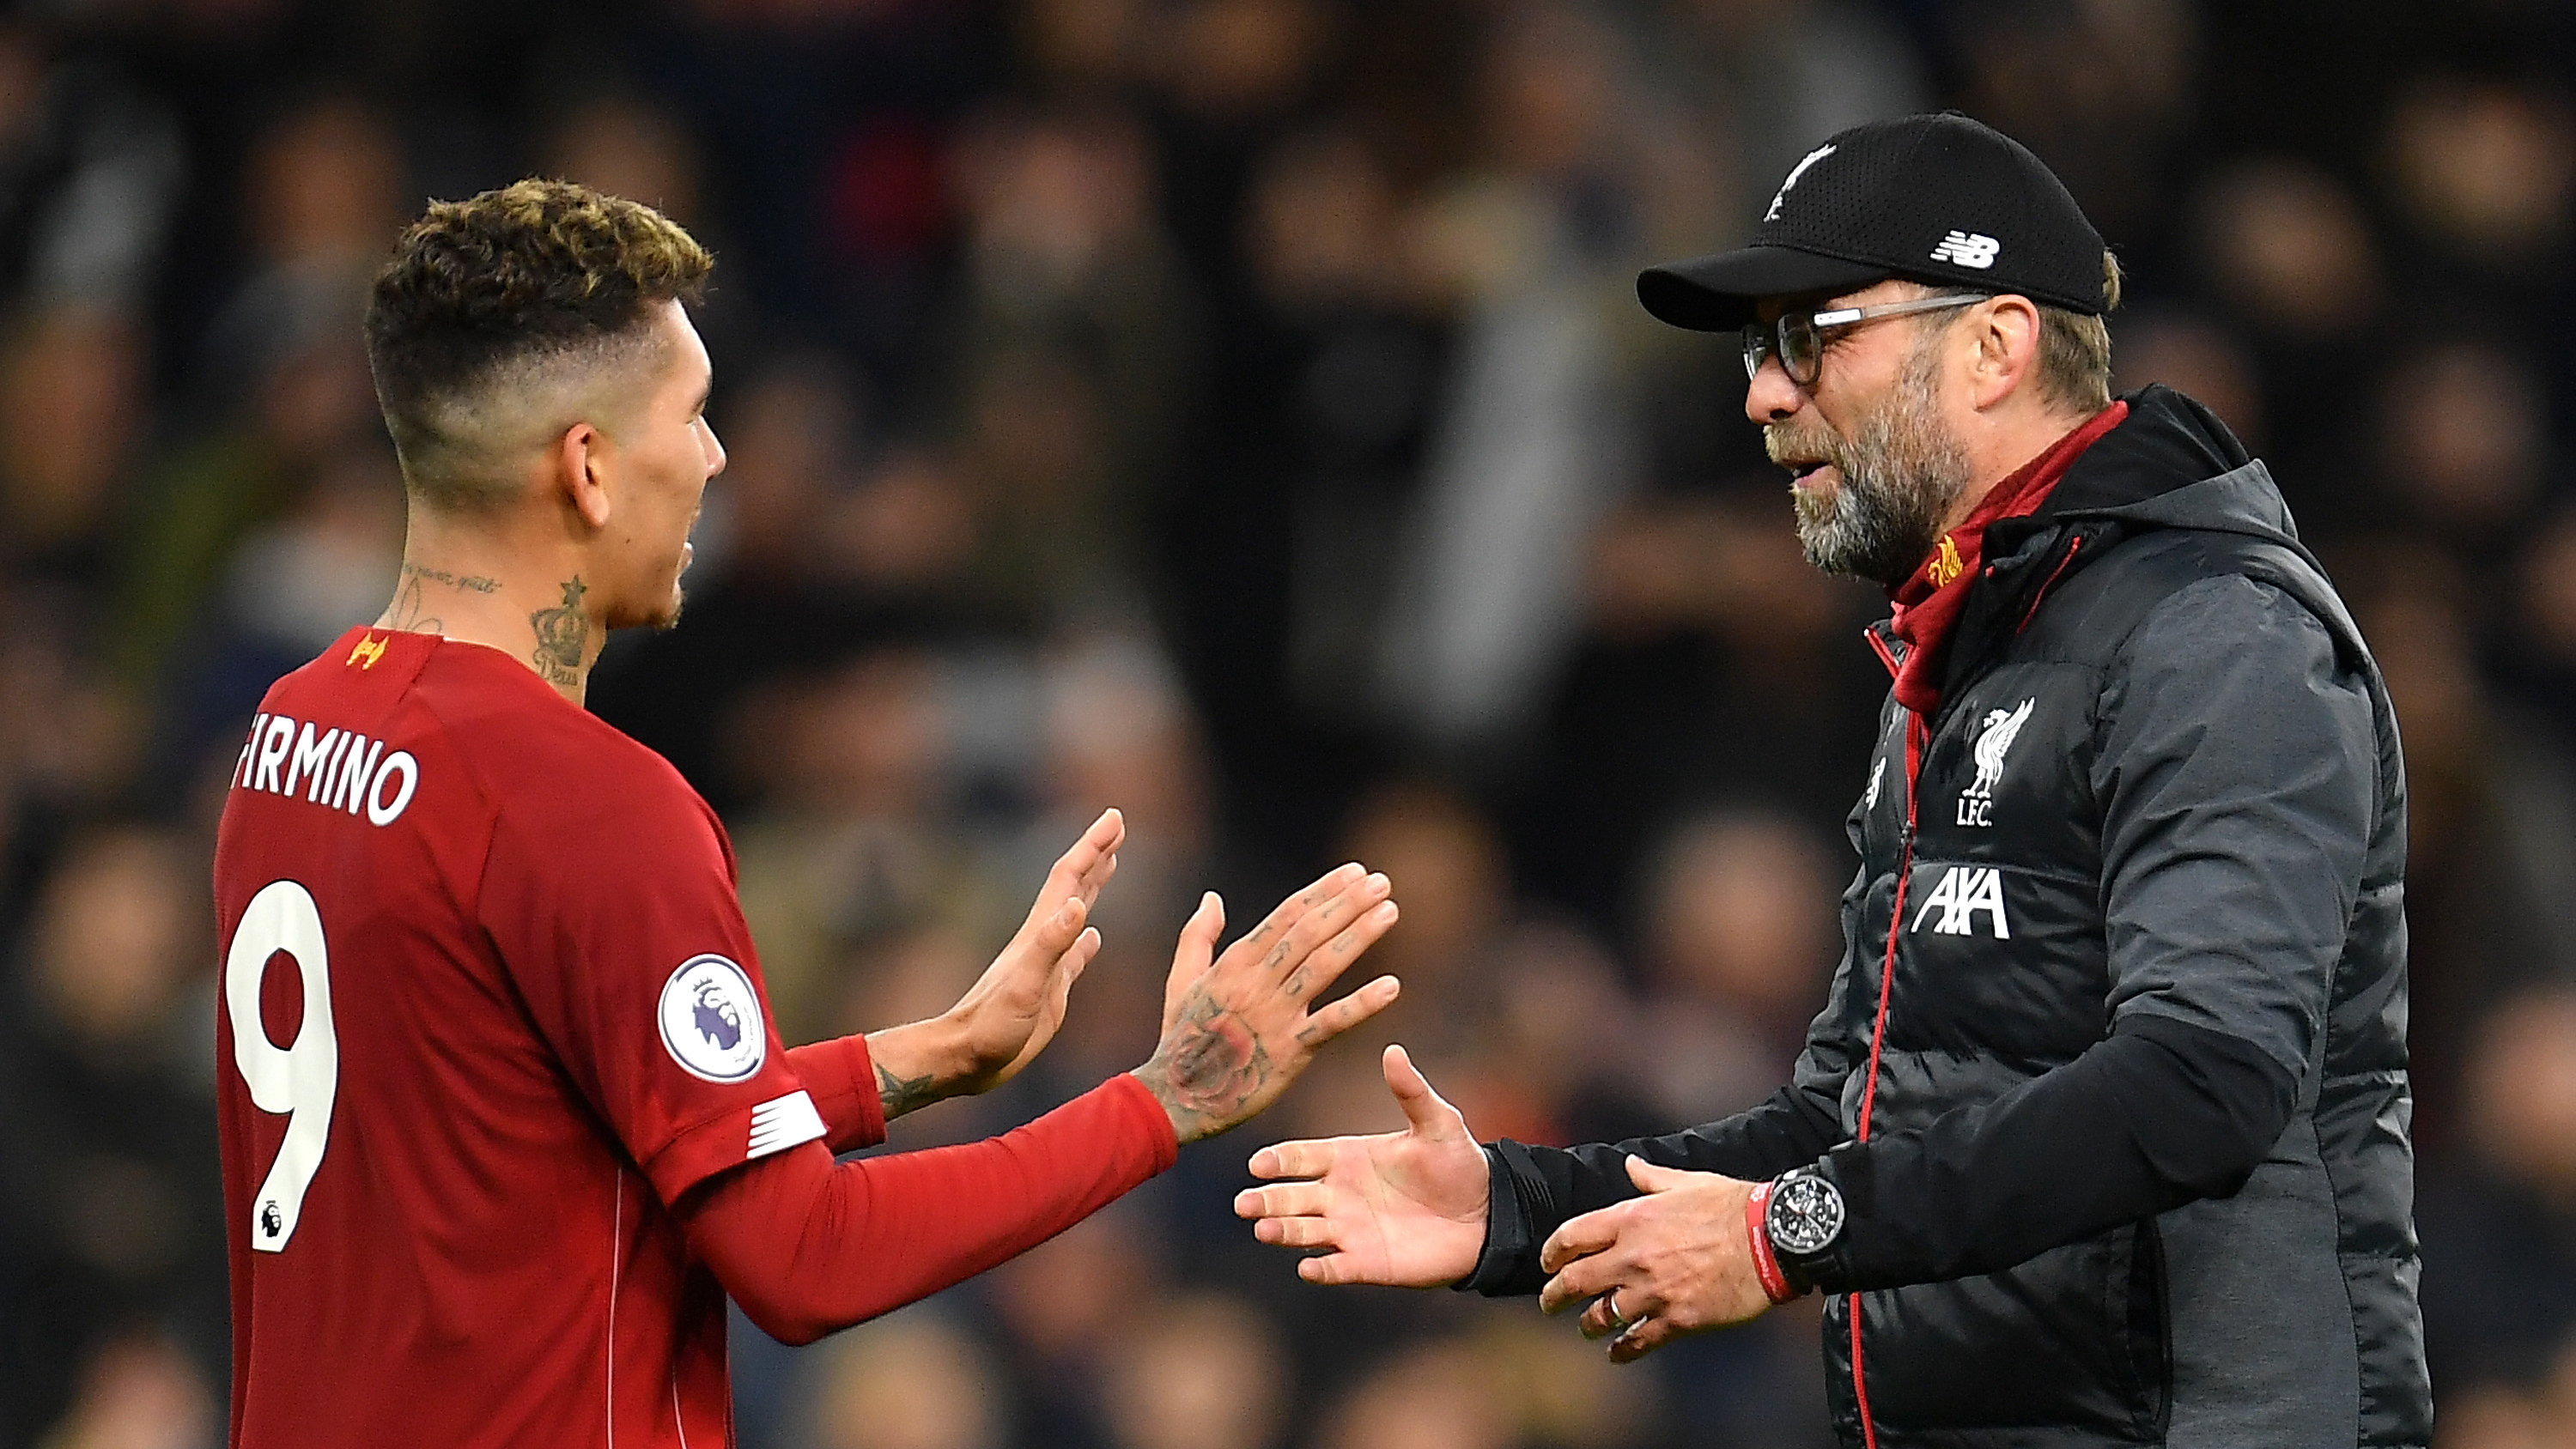 Firmino compares Liverpool's 2018-19 title failure to 'hitting the post'